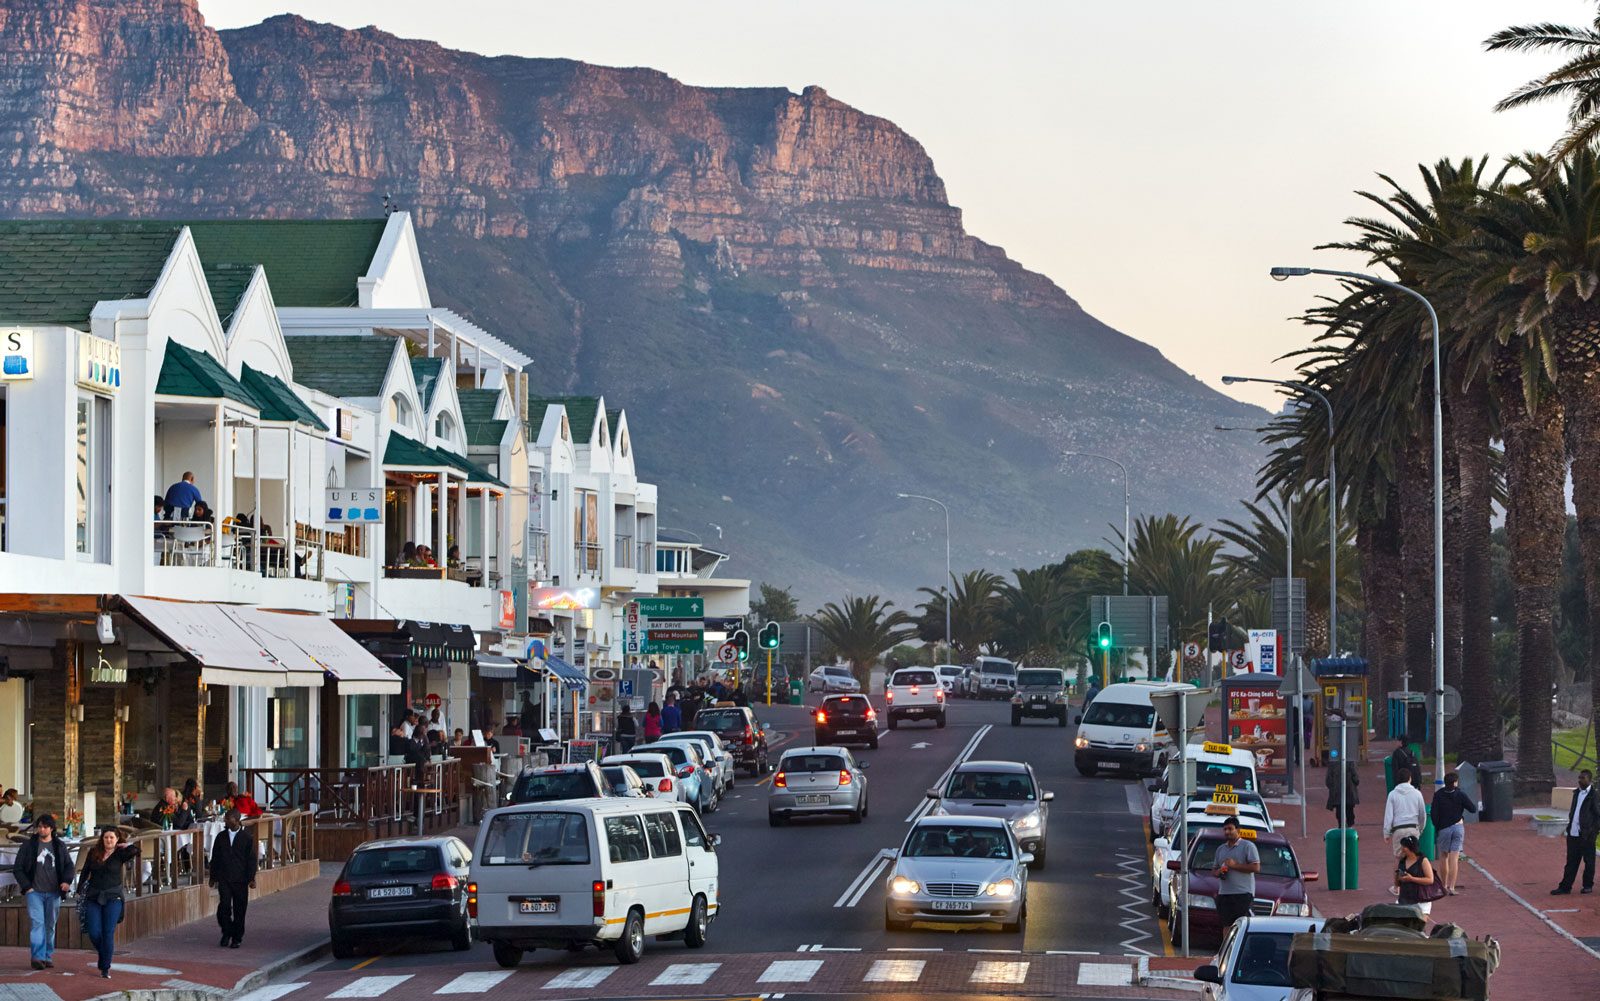 11. Cape Town, South Africa